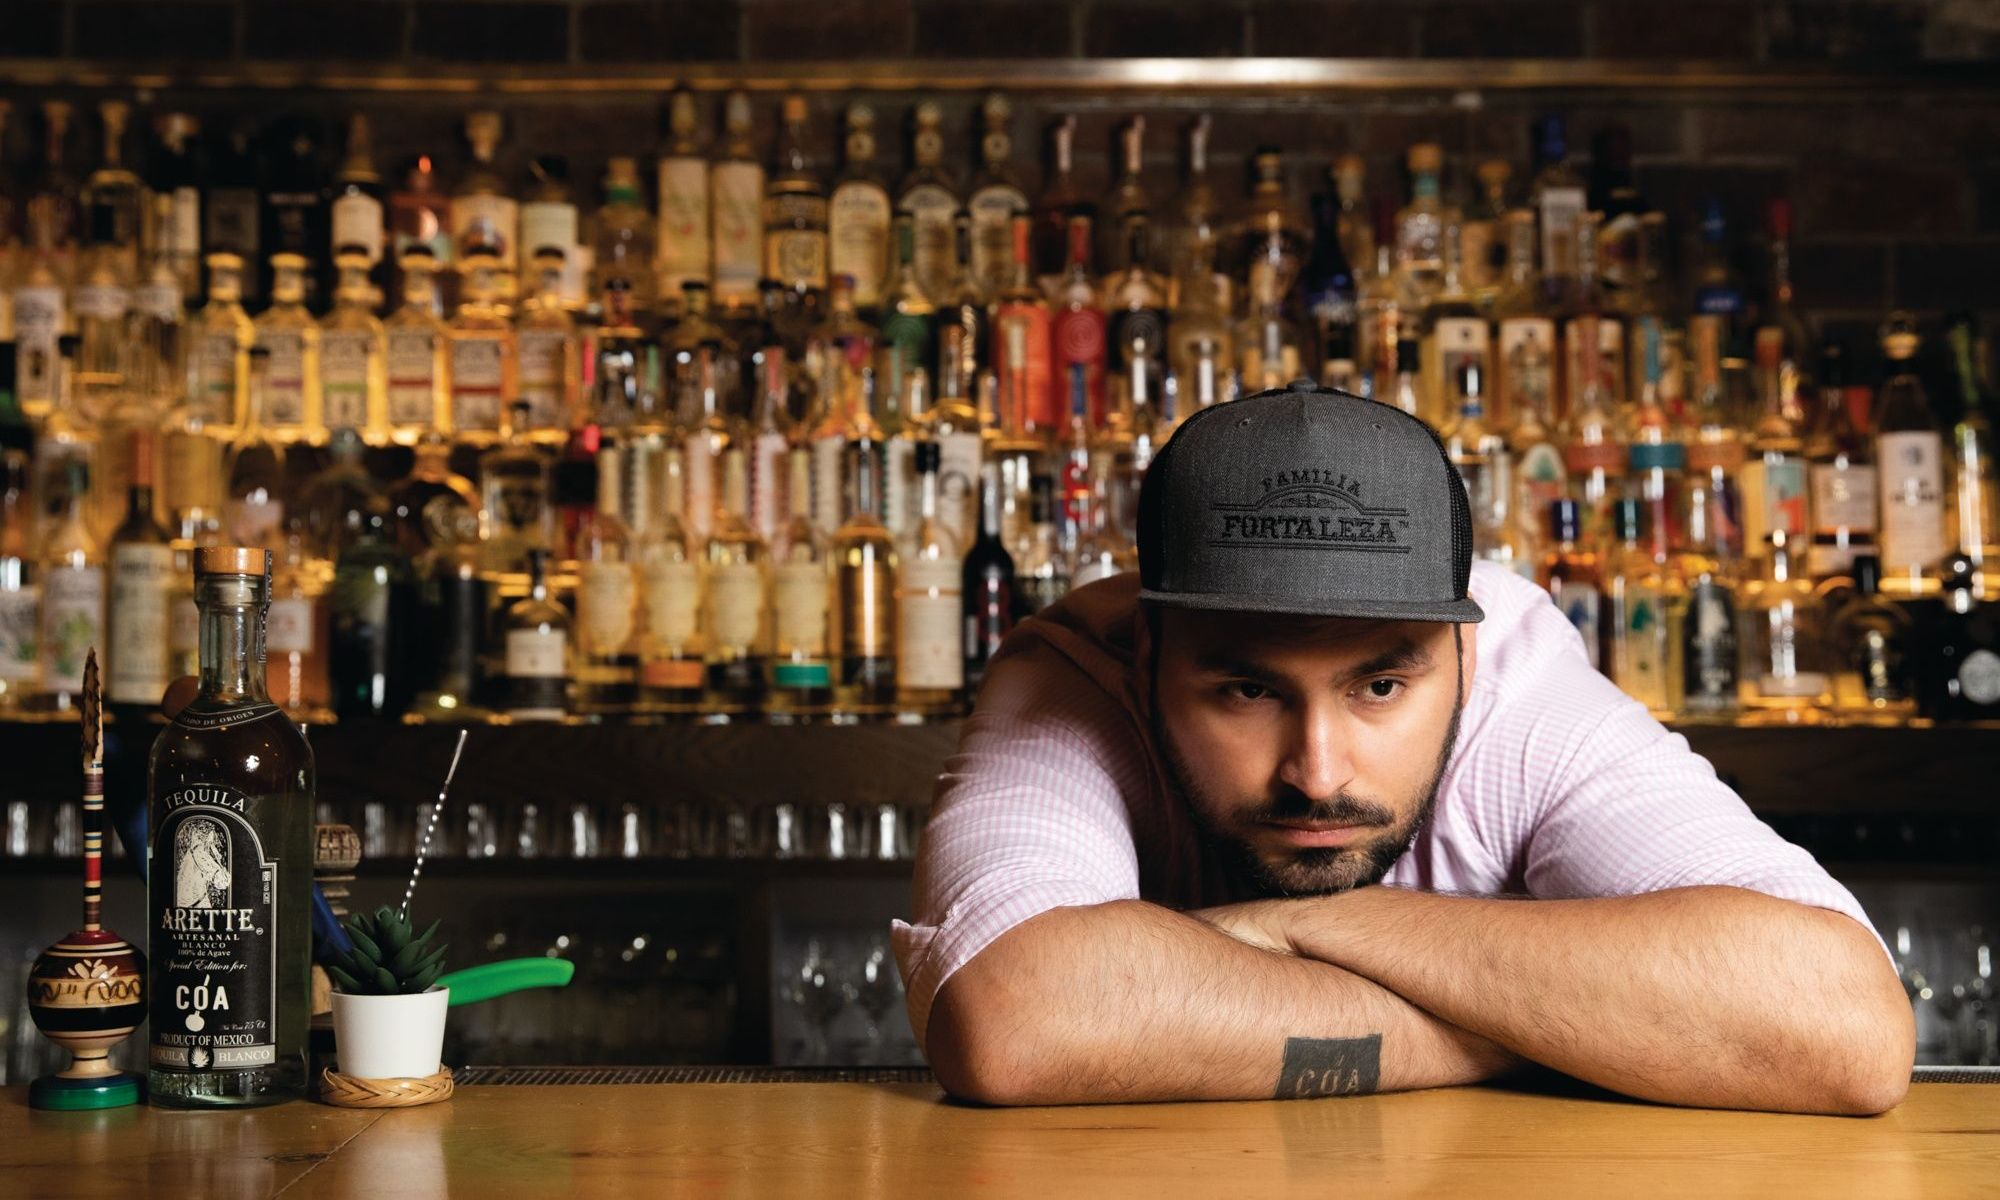 COA Is The Best Bar In Hong Kong, According To The World's 50 Best Bars 2020 List